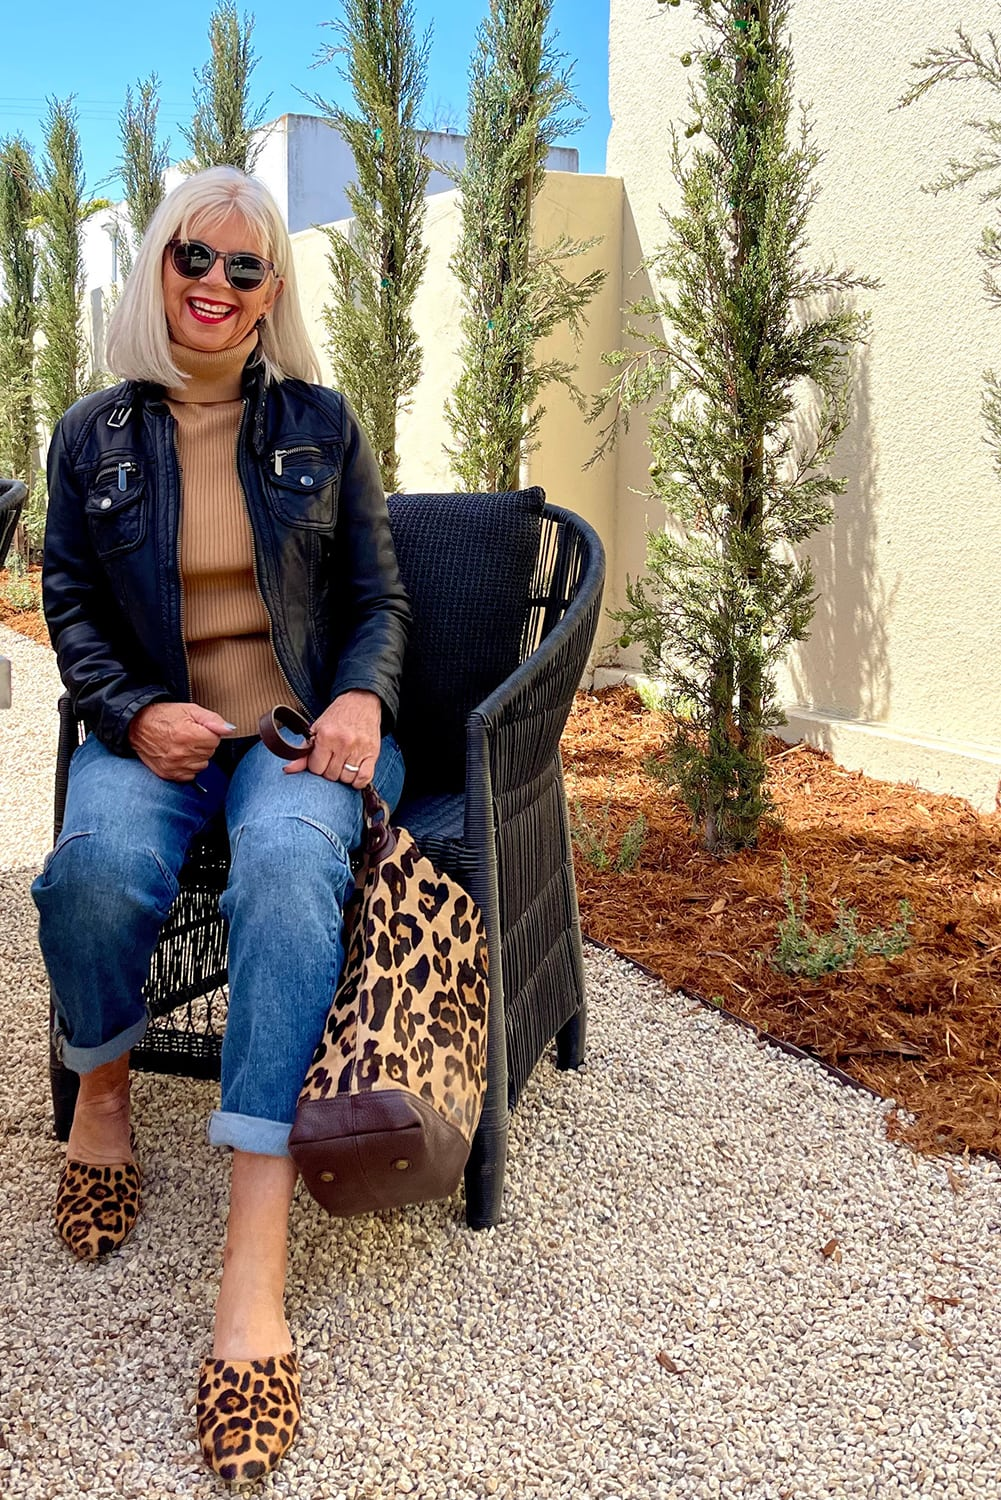 cindy hattersley in pilcro jeans and moto jacket